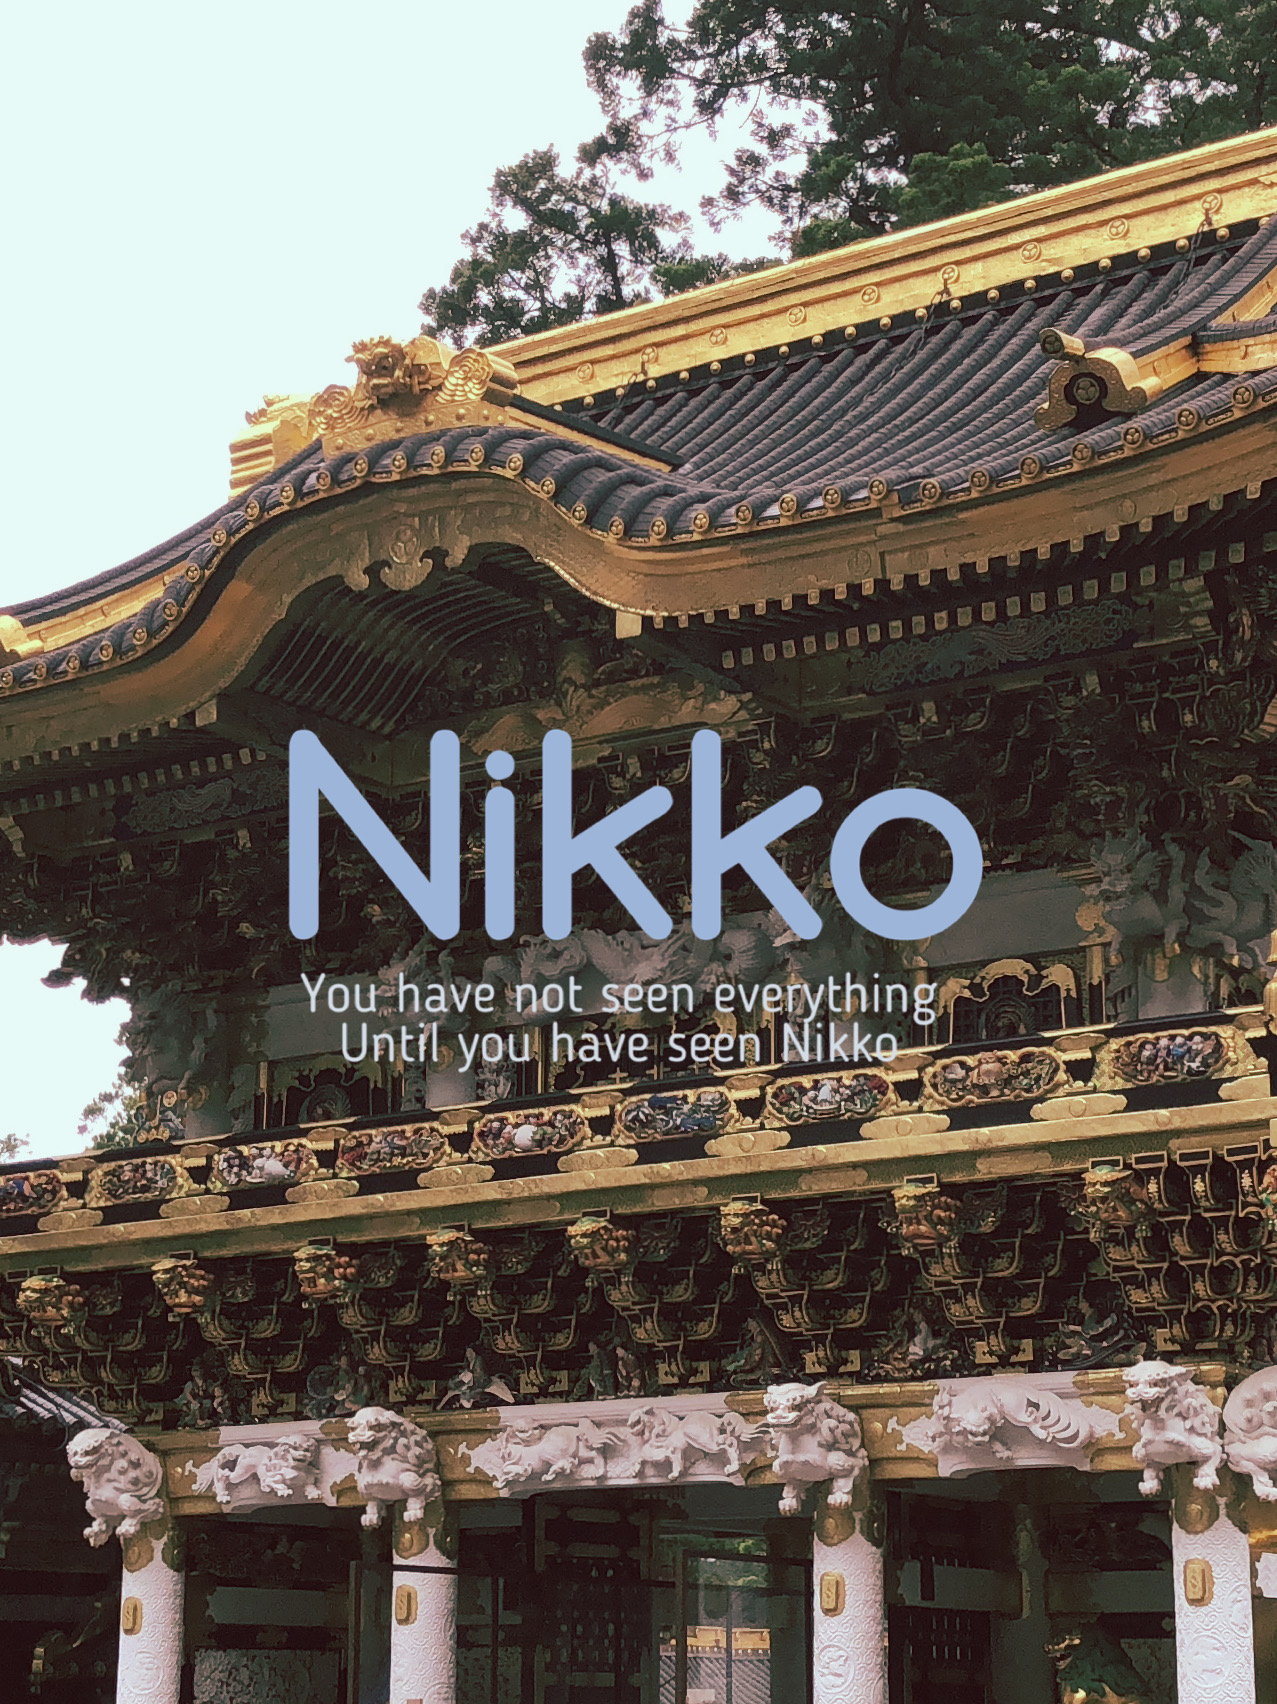 A Recommended Tokyo Day Trip: Don't Say Kekko until You Have Seen Nikko